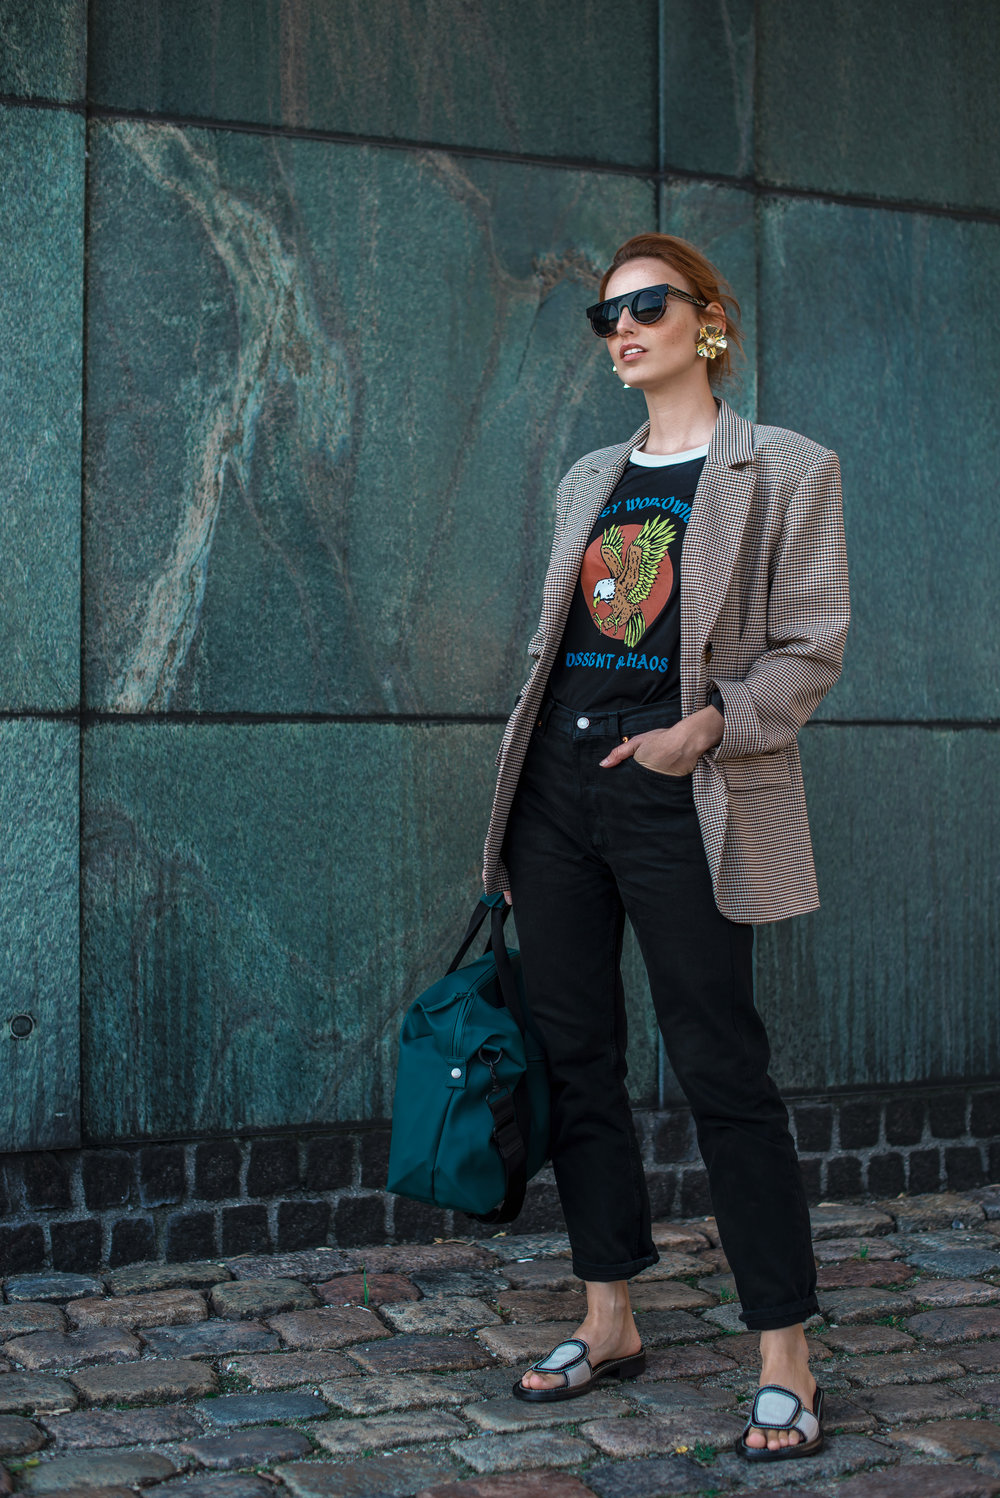 Zara blazer // Obey t-shirt // Levi's jeans // Acne Studios shoes // Rains bag // Komono sunnies